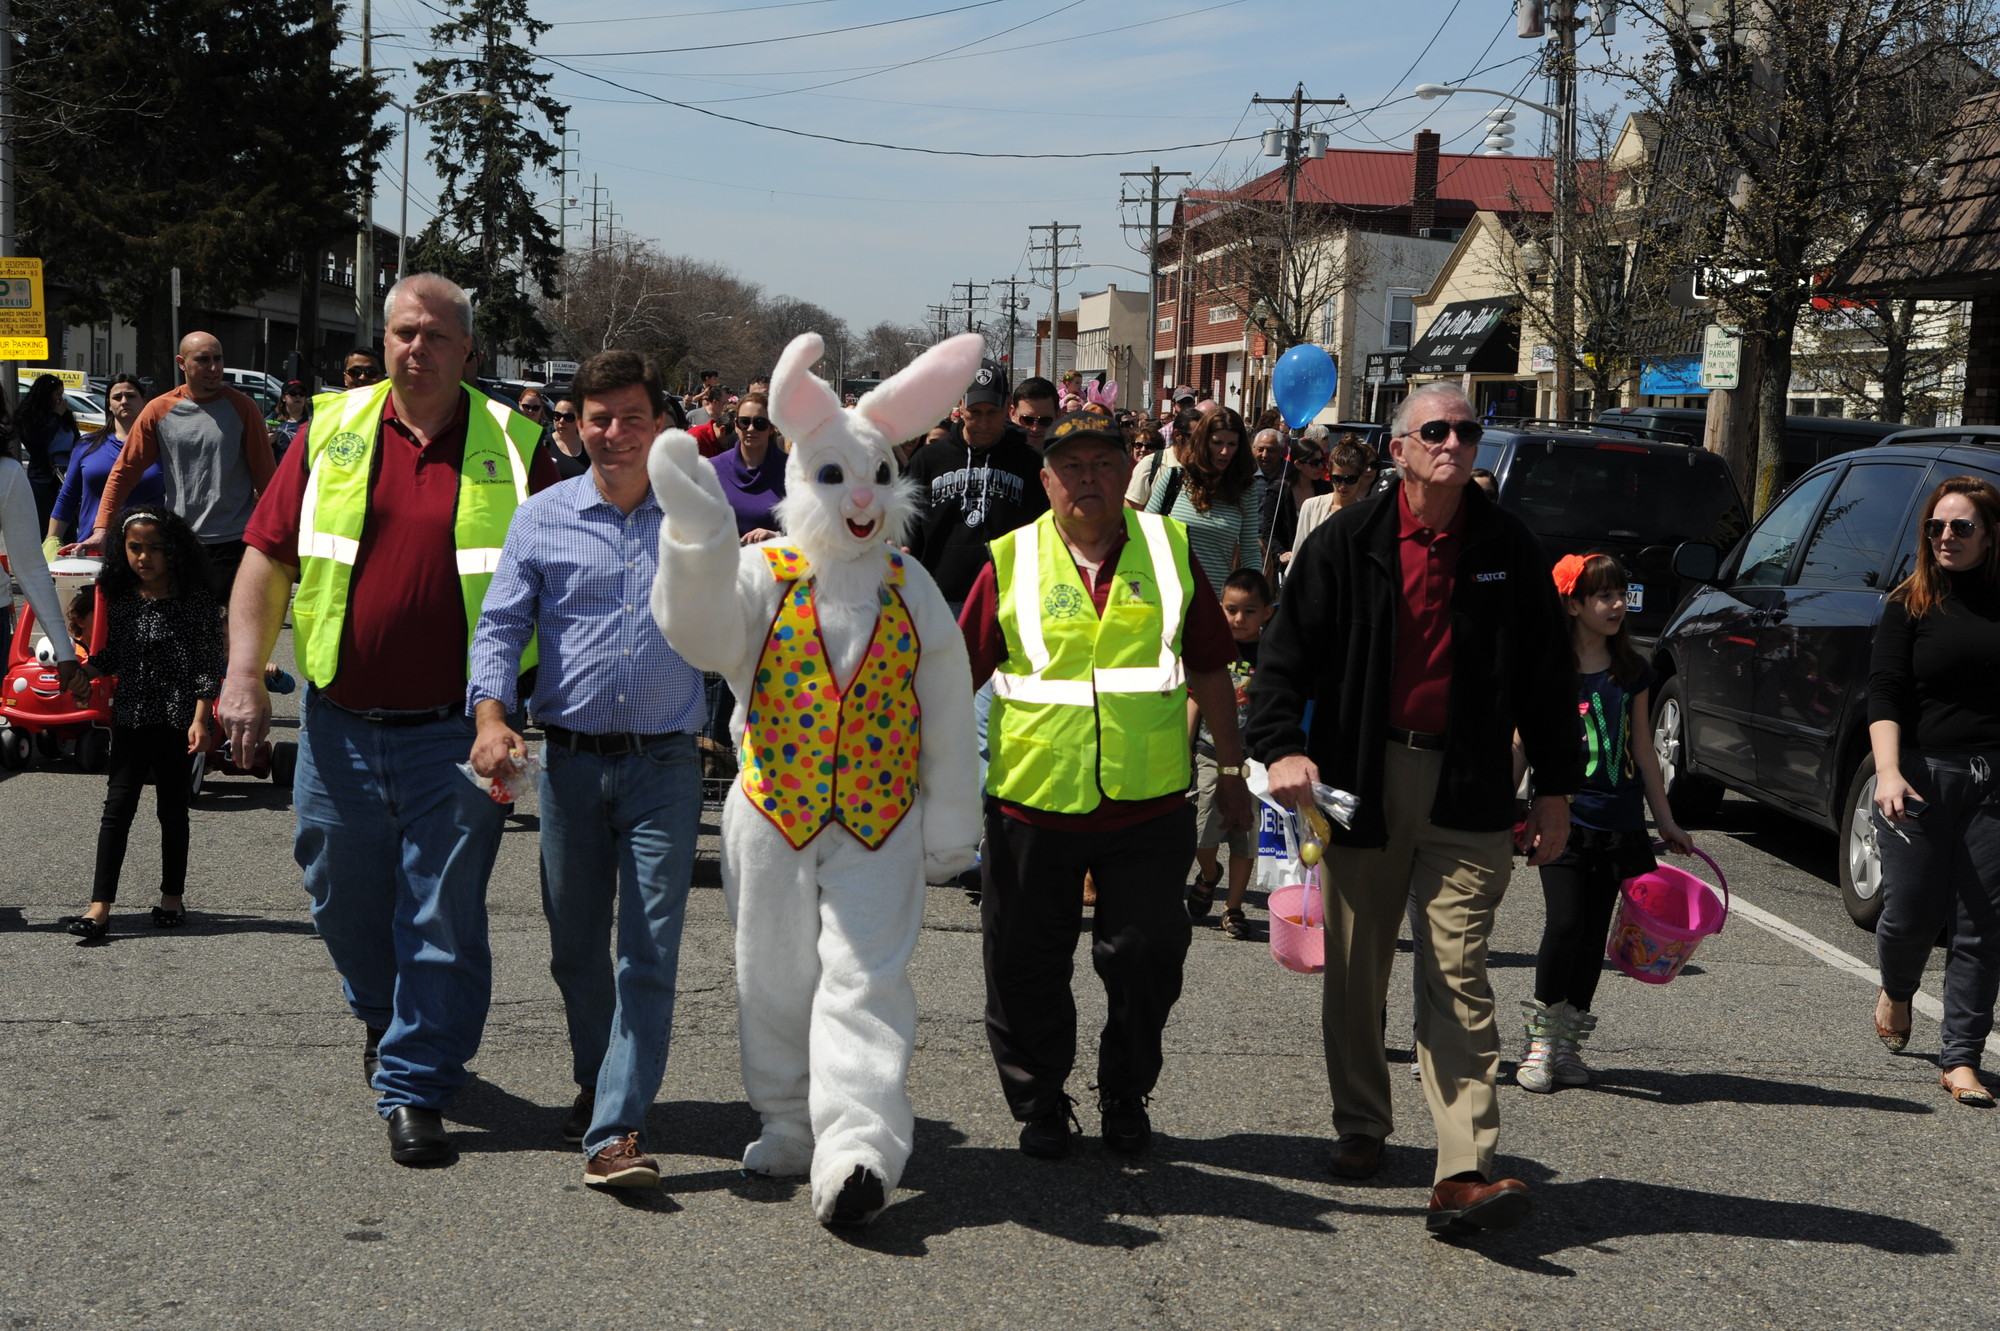 Board members of the Chamber of Commerce of the Bellmores and local officials led the parade, along with the Easter Bunny.